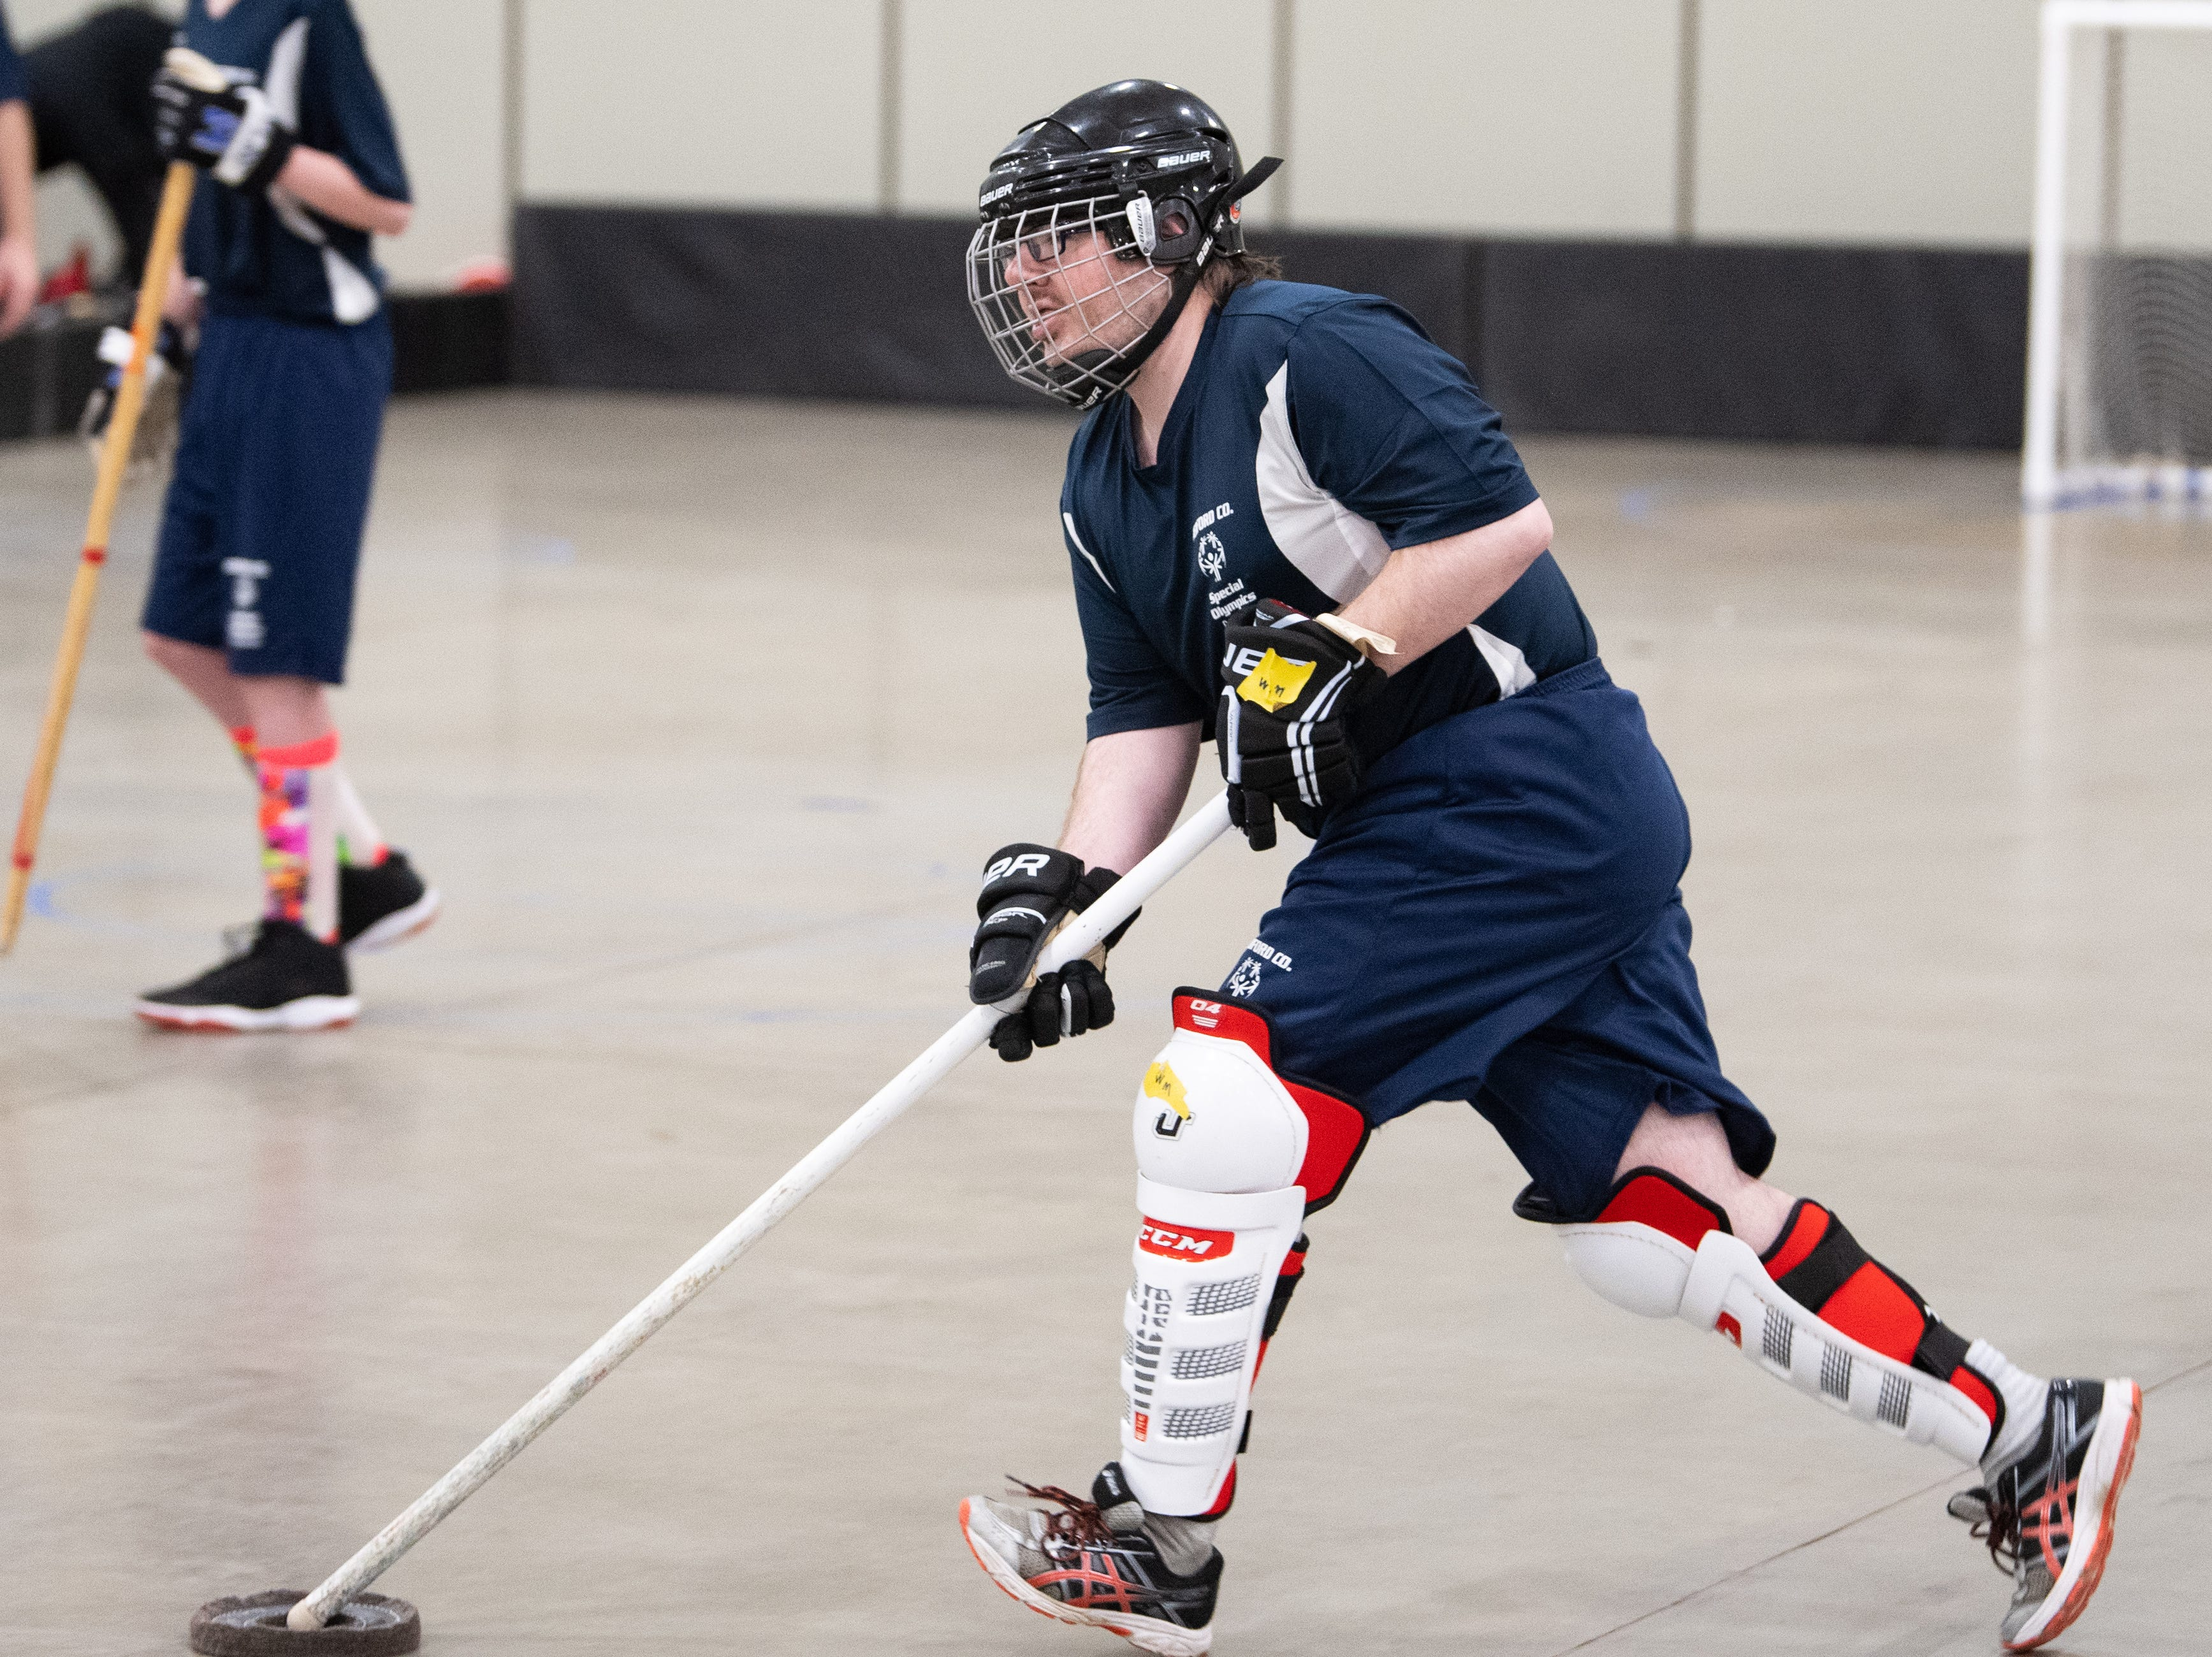 After the floor hockey preliminary rounds, teams take turns practicing on one of the three rinks during the Special Olympics Pennsylvania Indoor Winter Games, March 2, 2019.